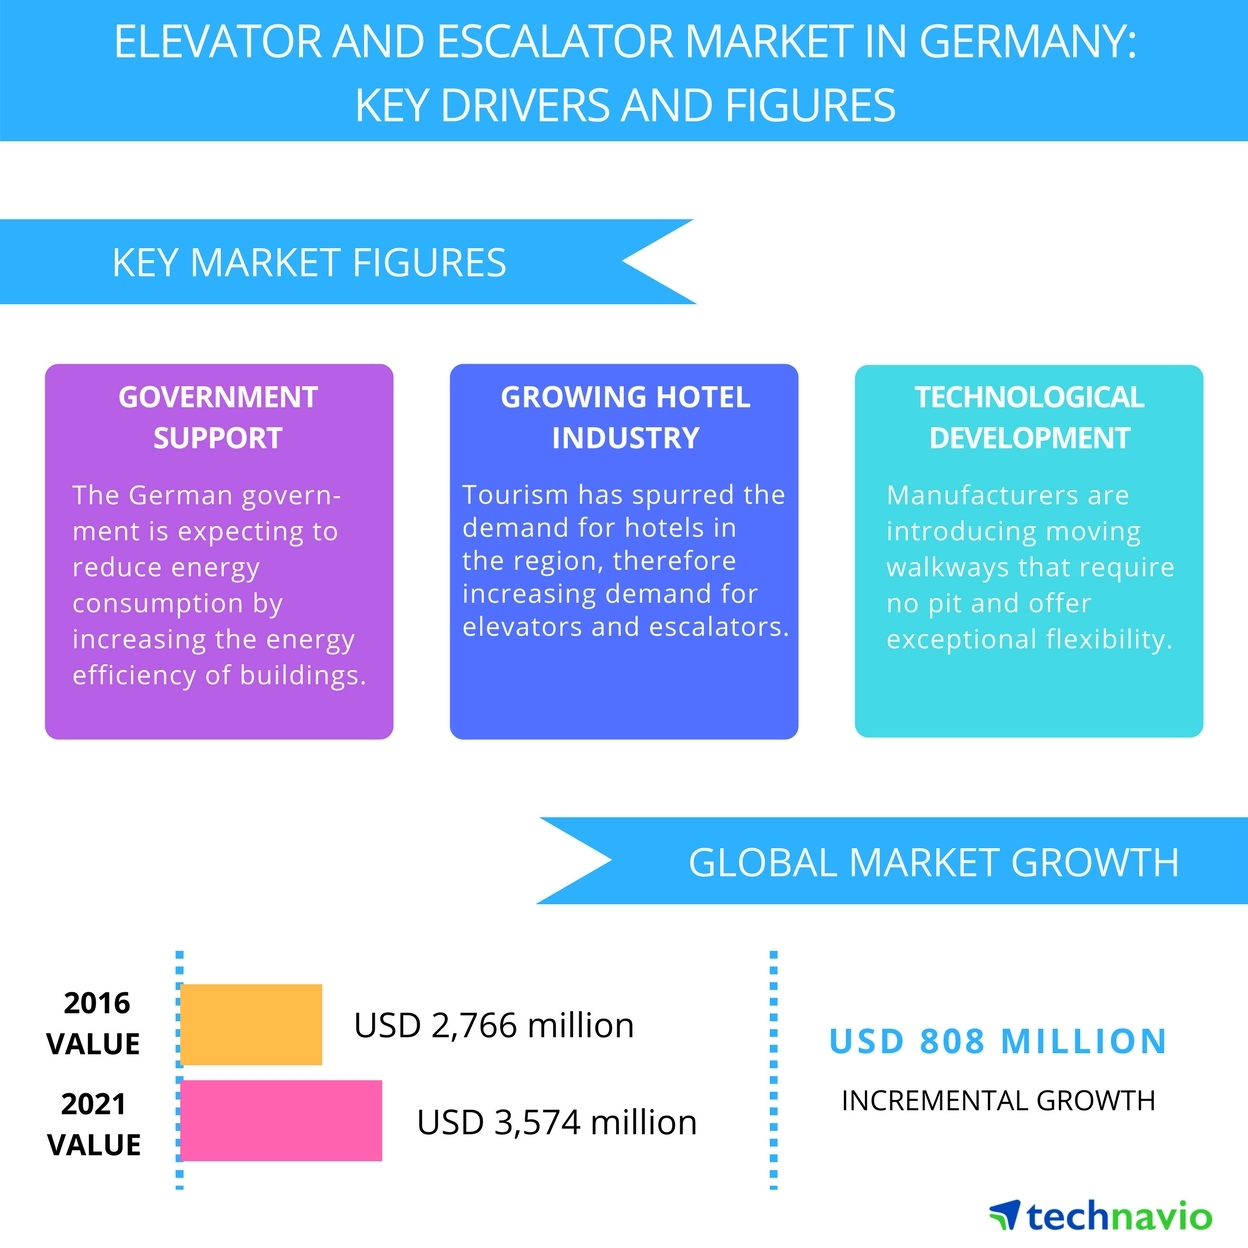 Top 5 Vendors In The Elevator And Escalator Market In Germany From